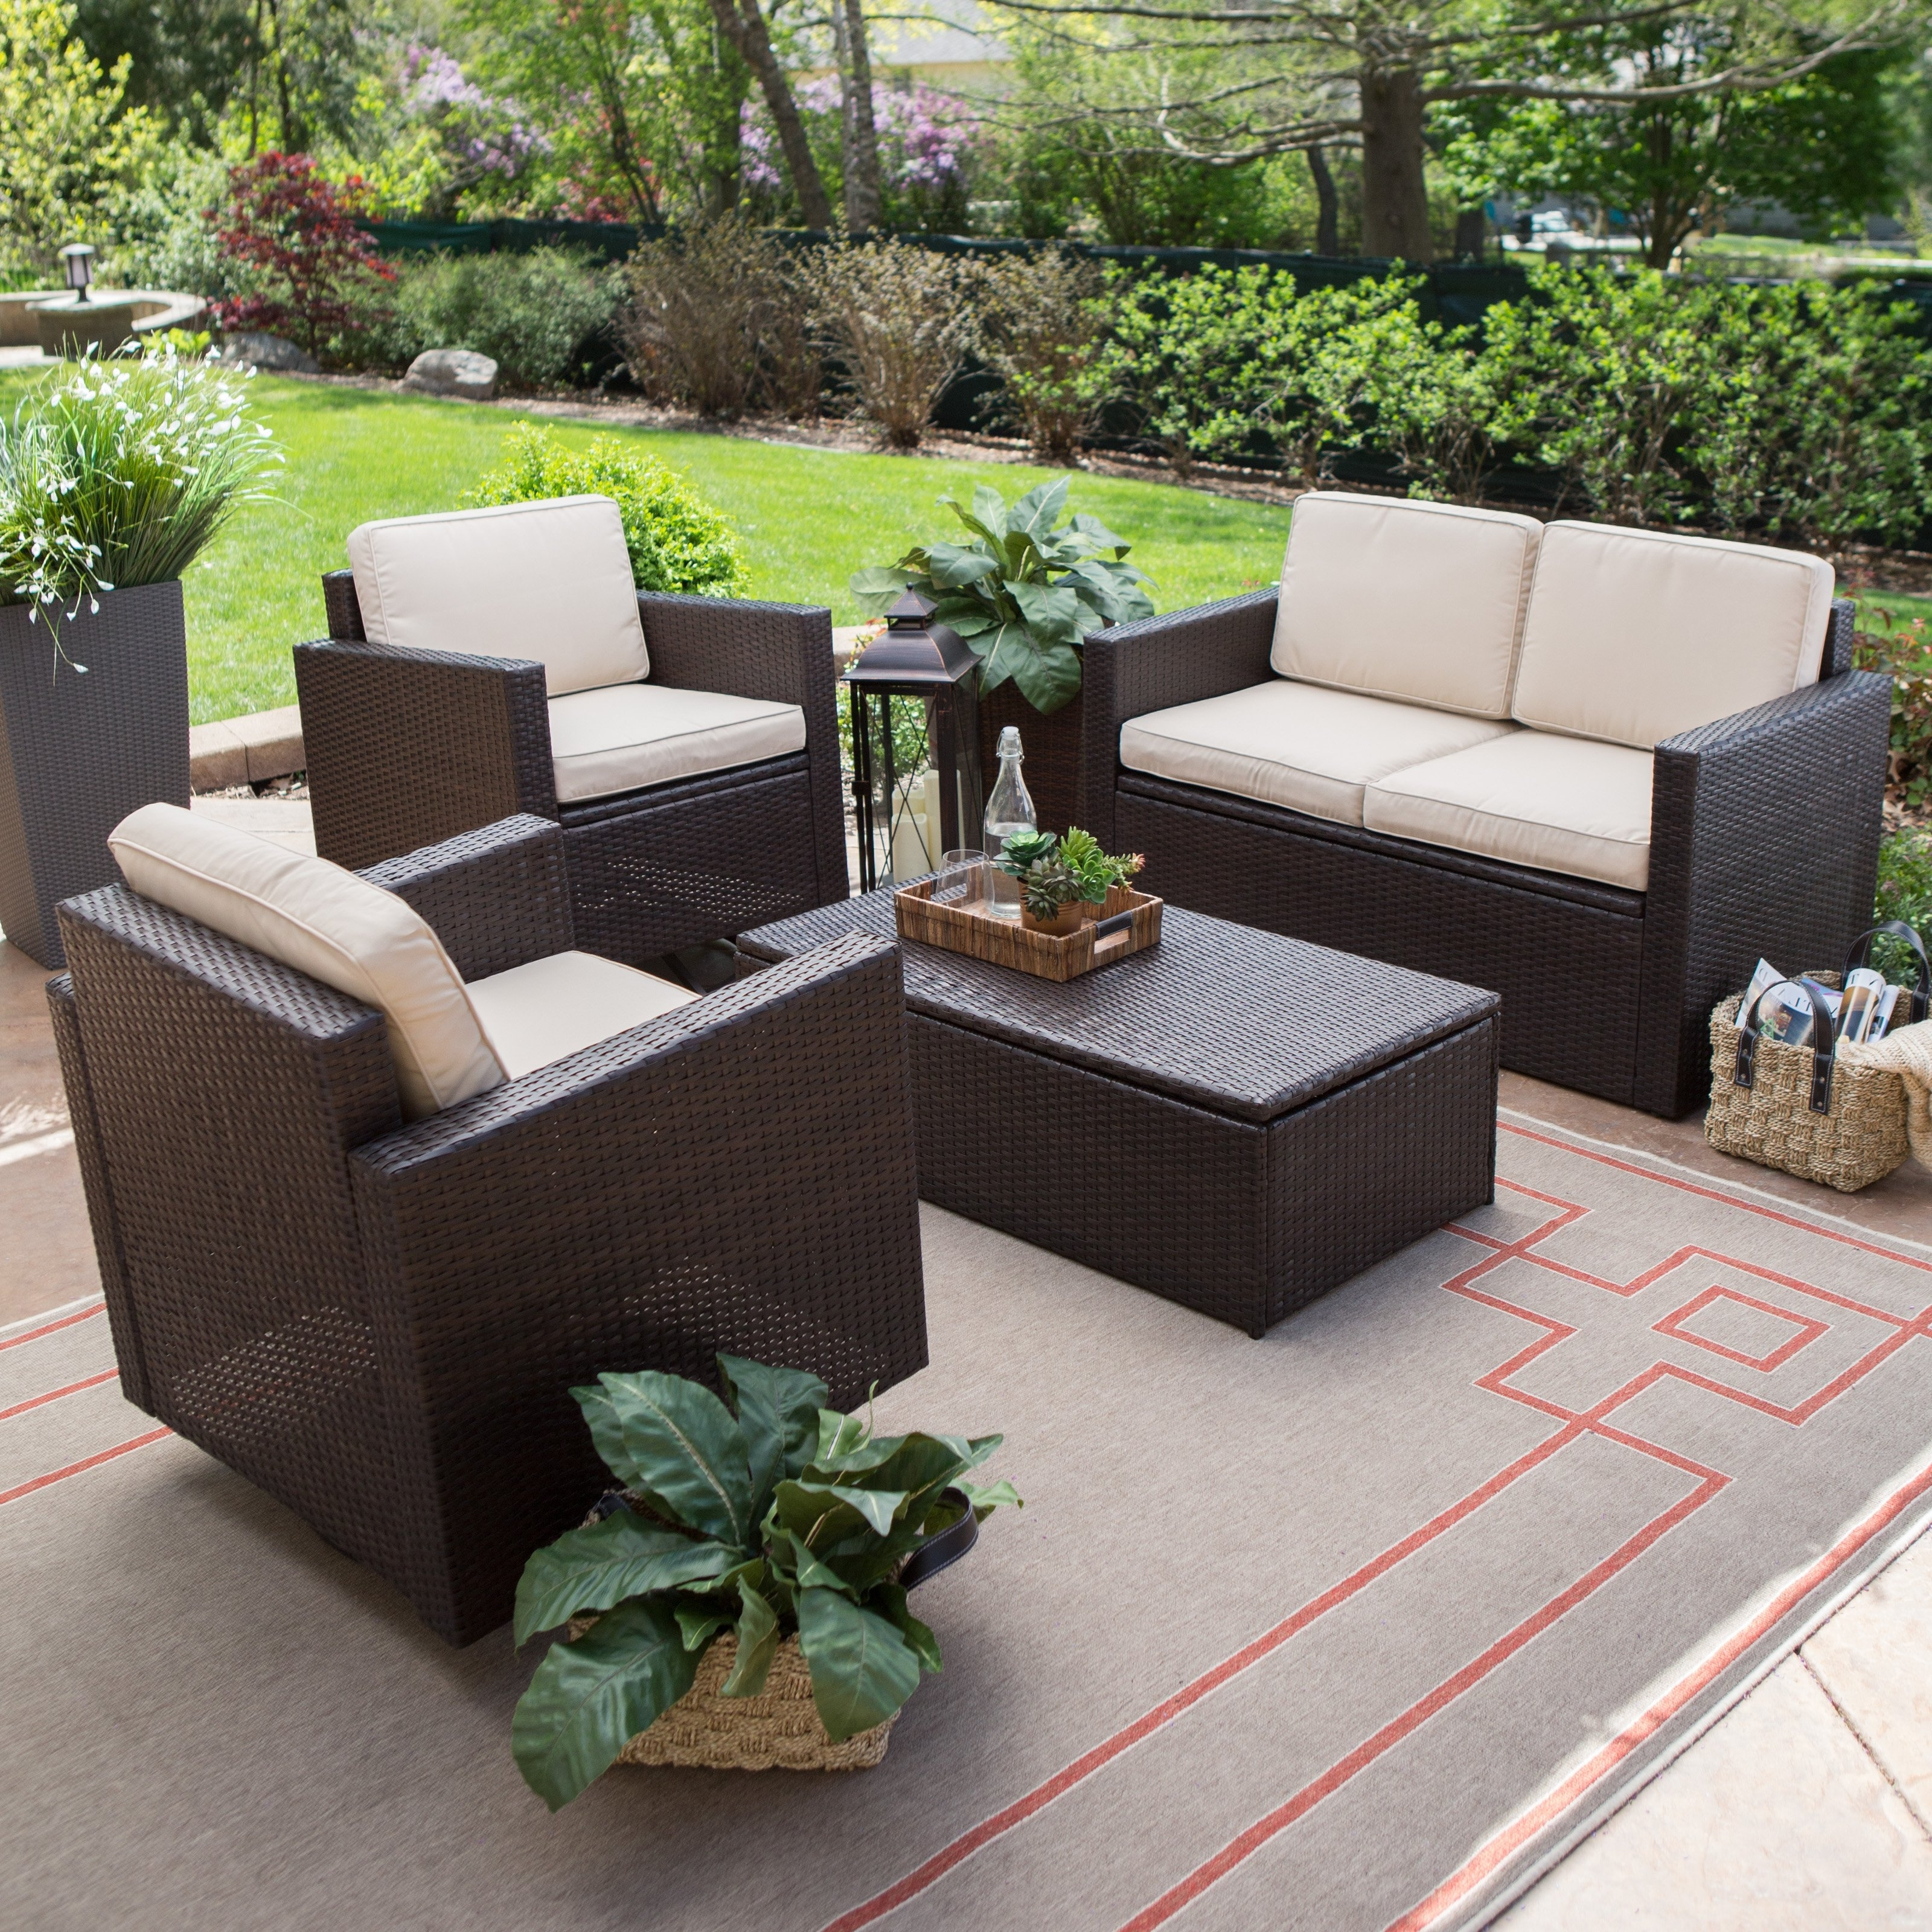 Resin Wicker Patio Conversation Sets With Most Current Coral Coast Berea Wicker 4 Piece Conversation Set With Storage (View 6 of 20)